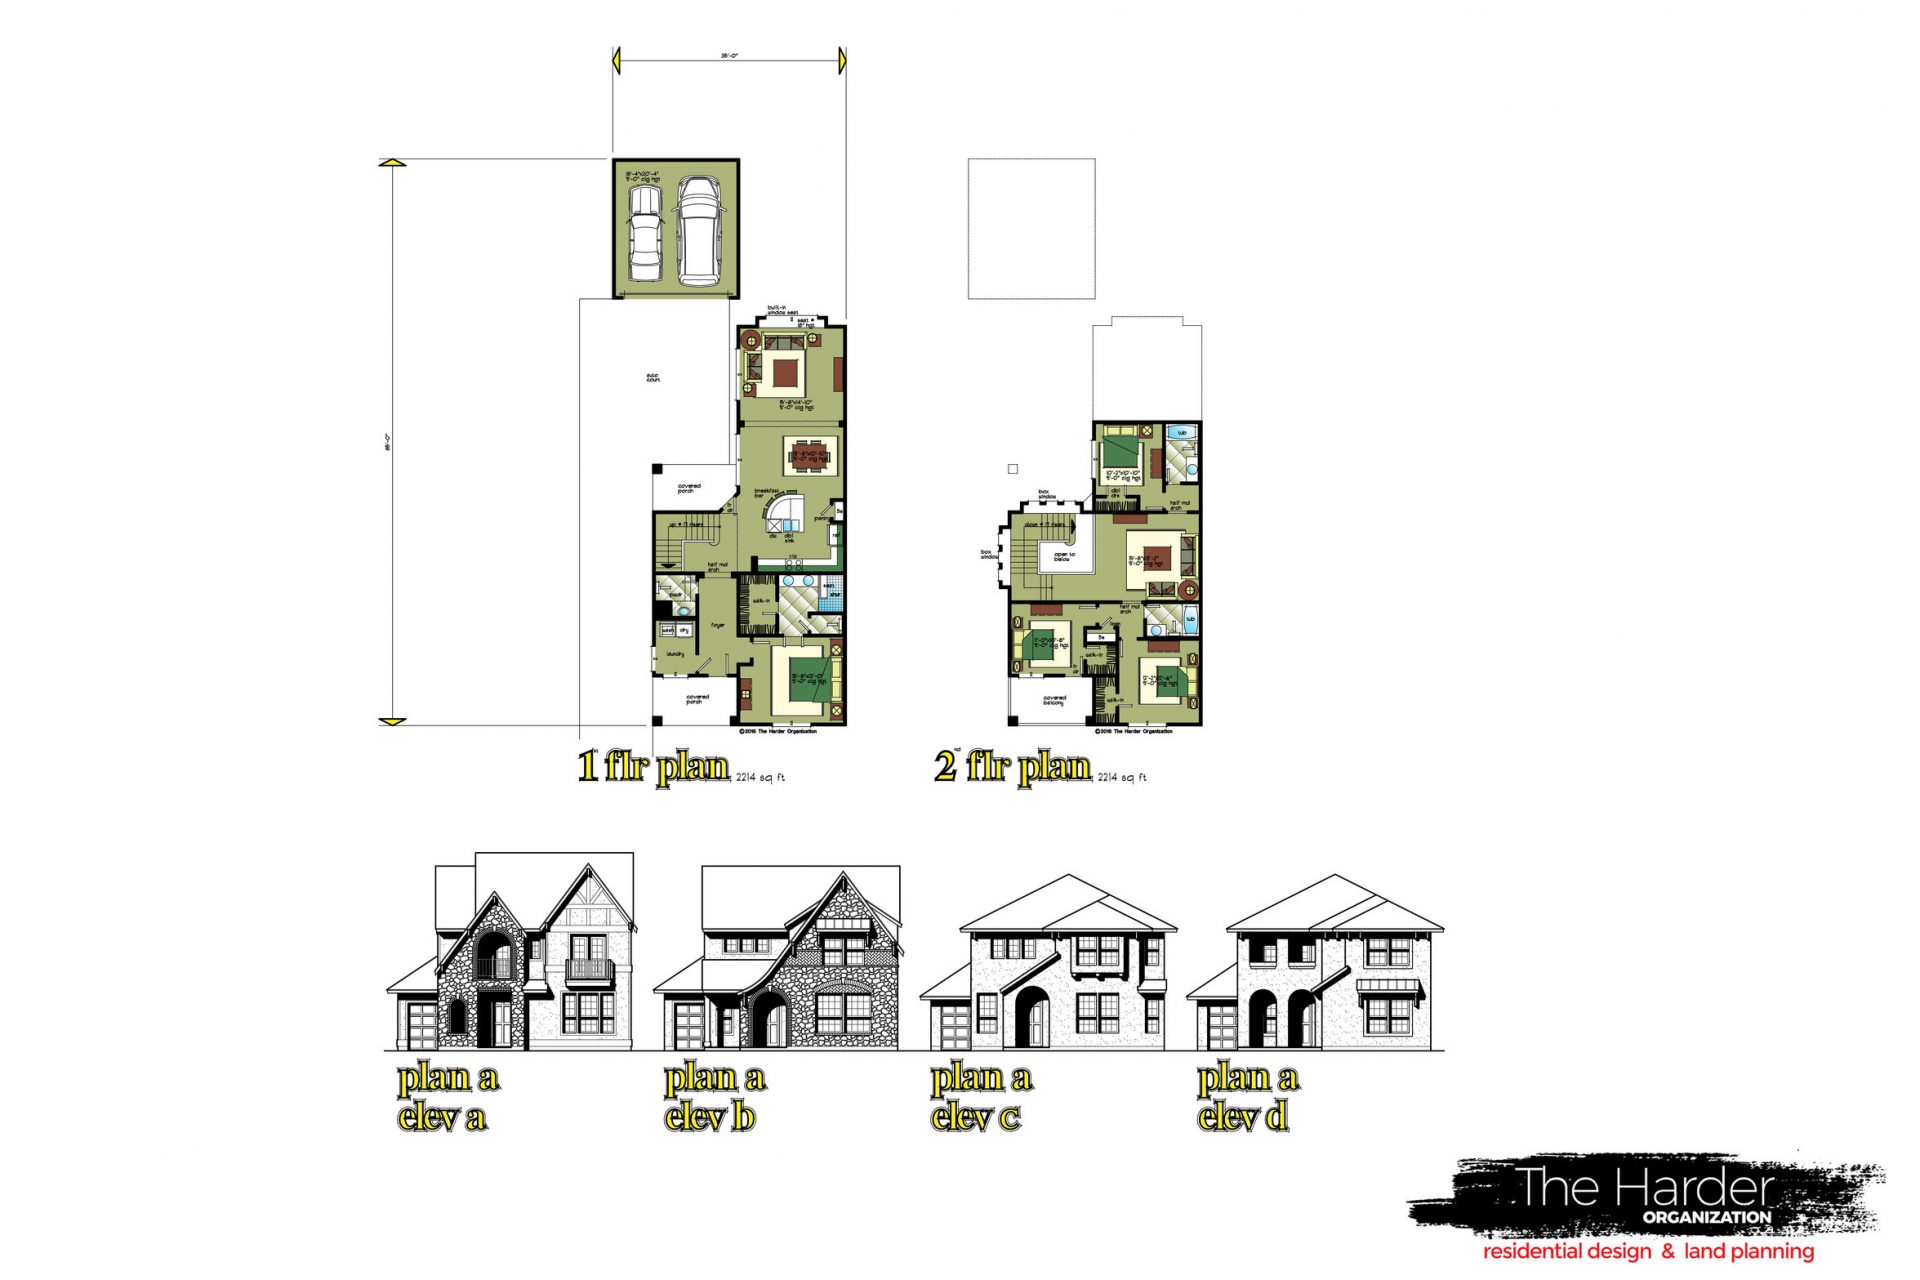 JDrawingsMeridian homesdetached gar site plan conceptdeta The – Site Drawings For Site Plan